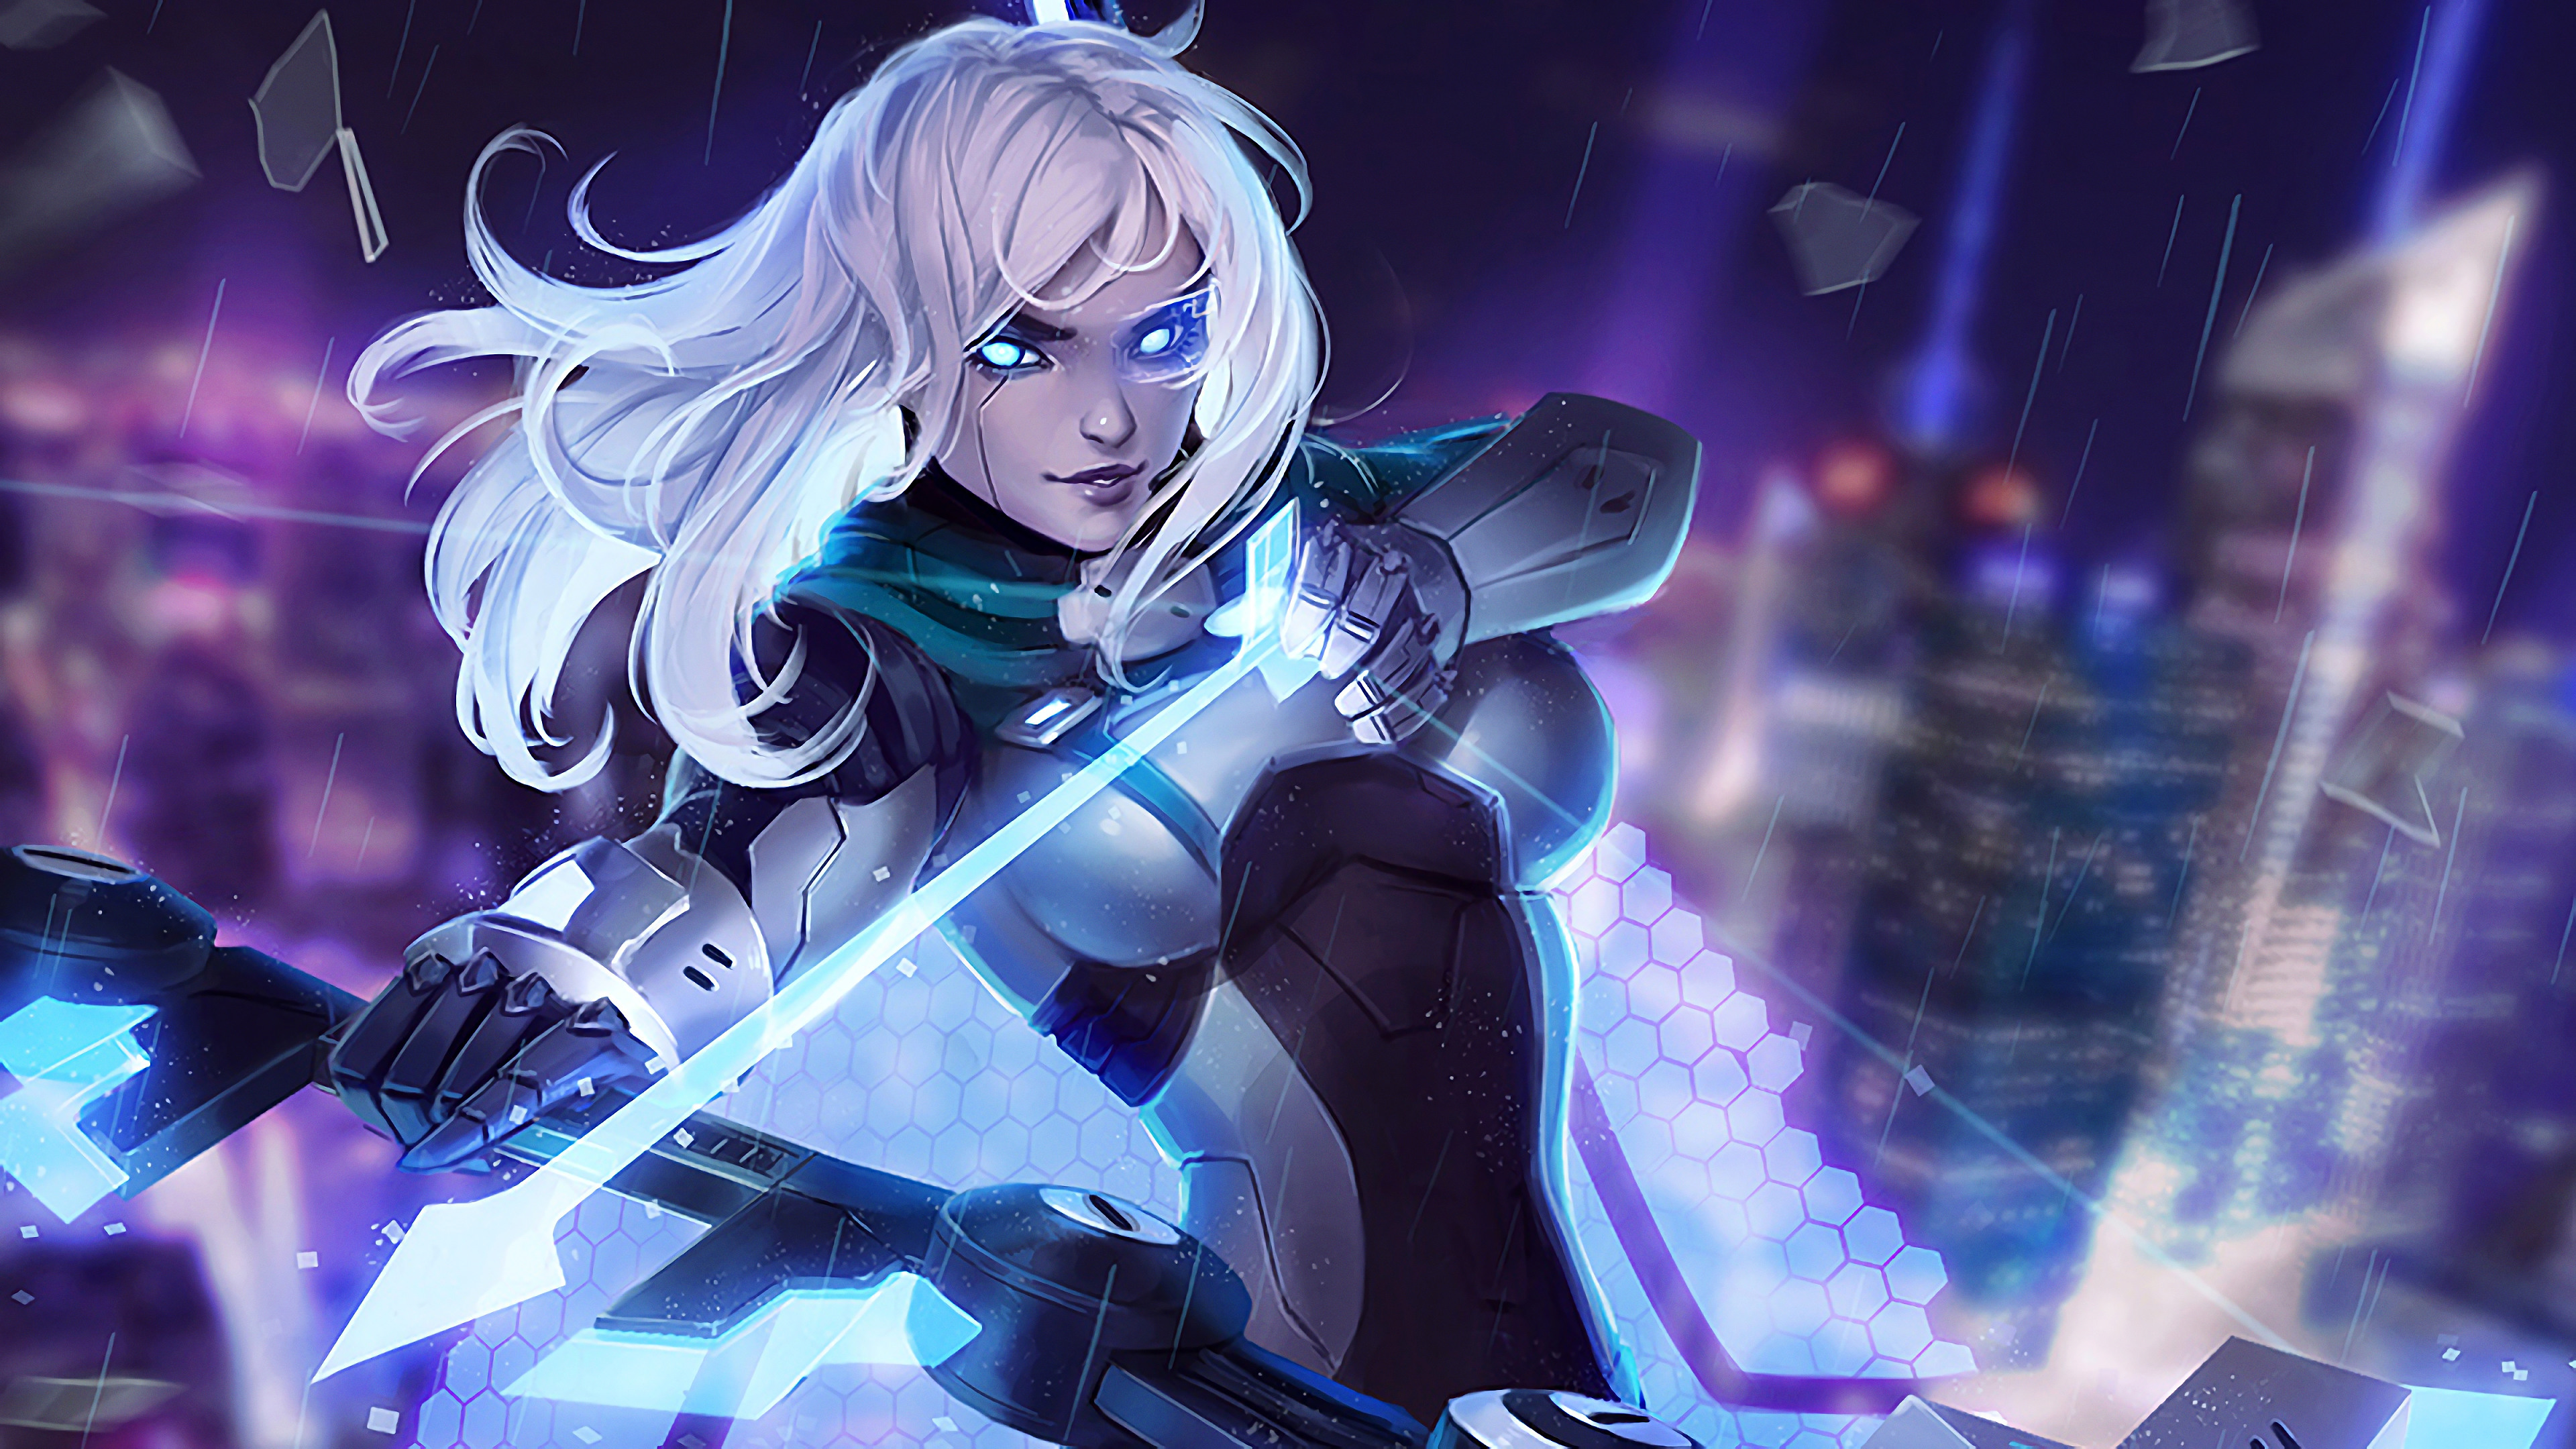 project ashe league of legends lol lol 1574103920 - PROJECT Ashe League of Legends LoL lol - PROJECT - League of Legends, league of legends, Ashe